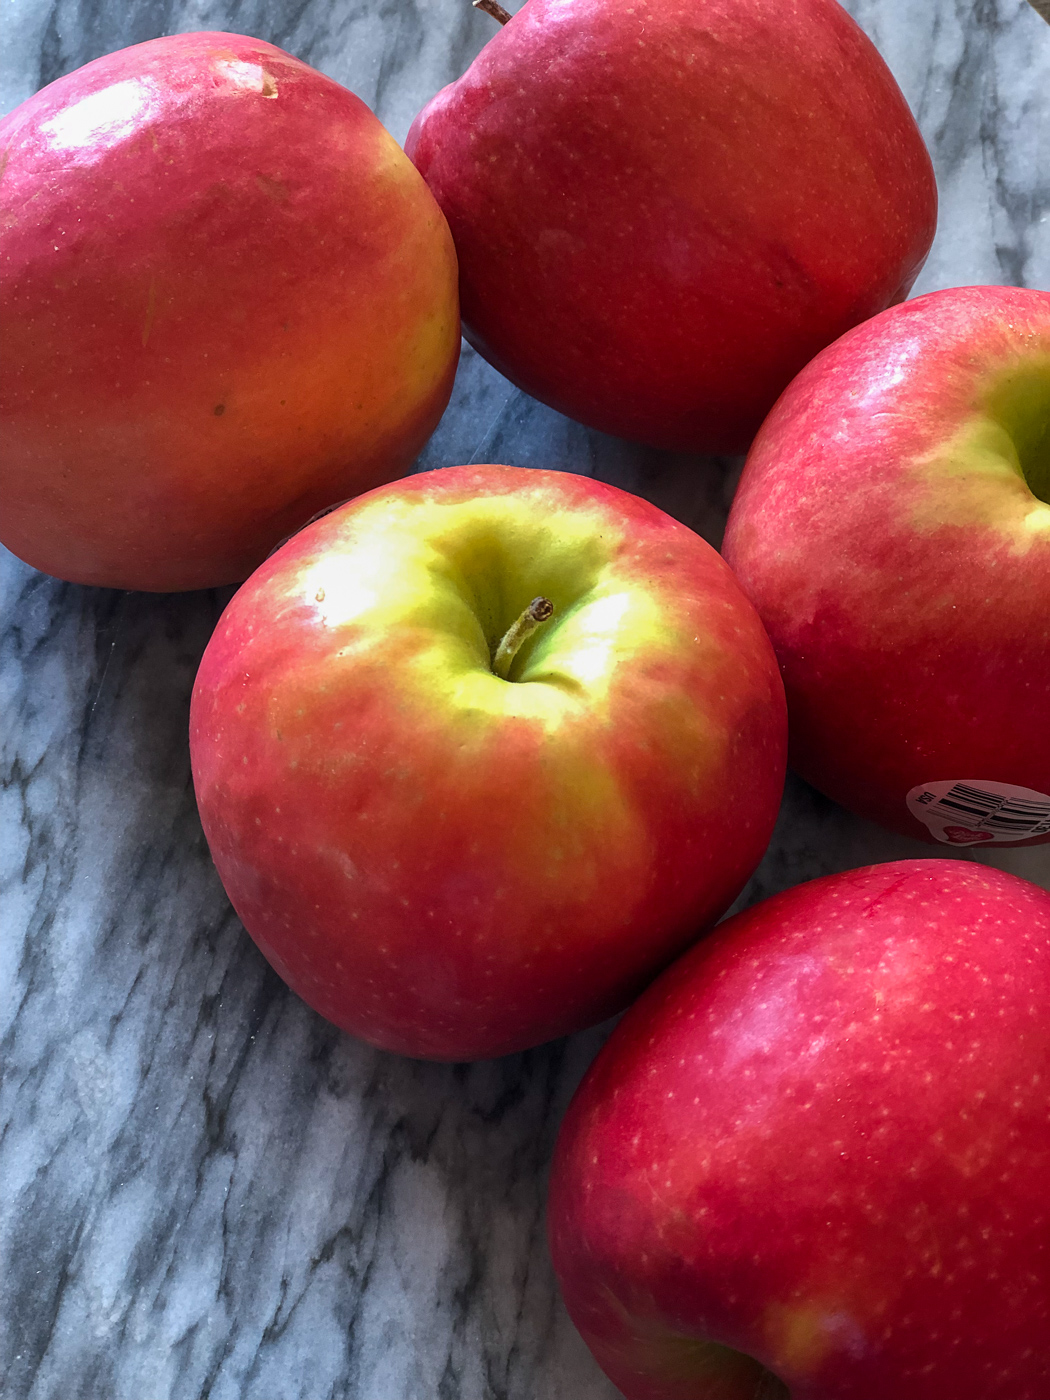 Meet Your Ingredients: Cripps Pink/Pink Lady Apples